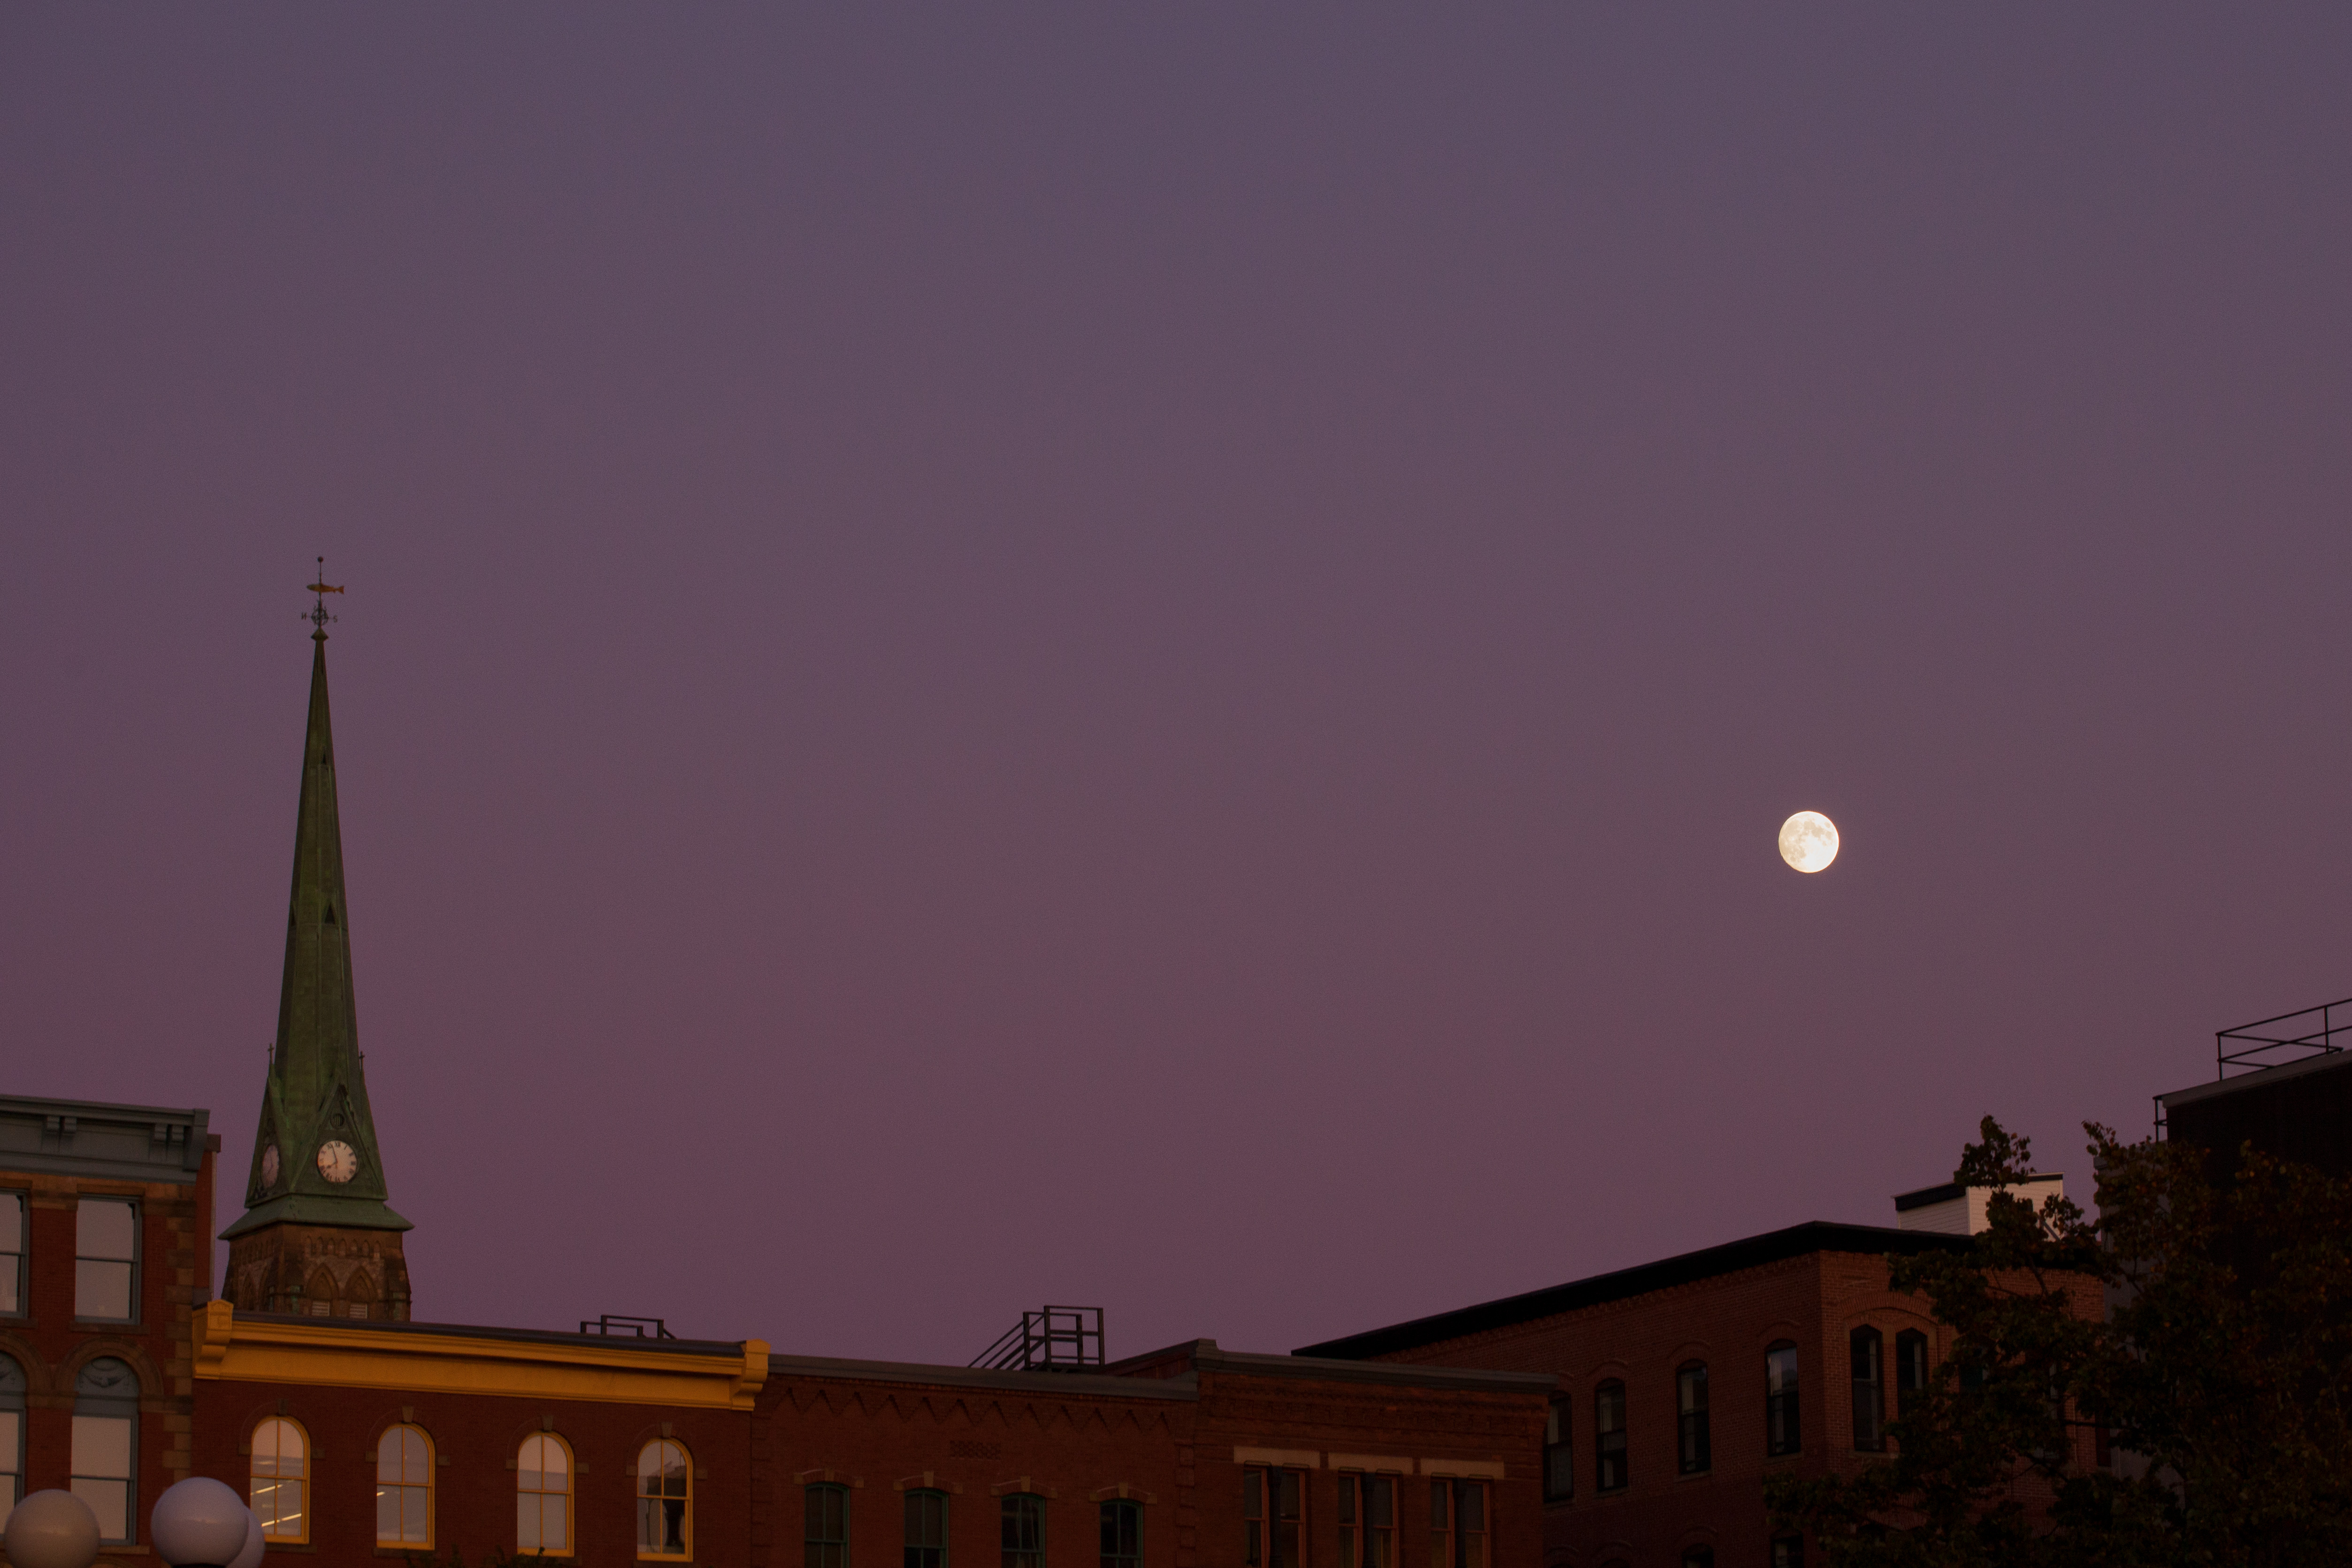 A photograph depicting The Moon Over Prince William Street